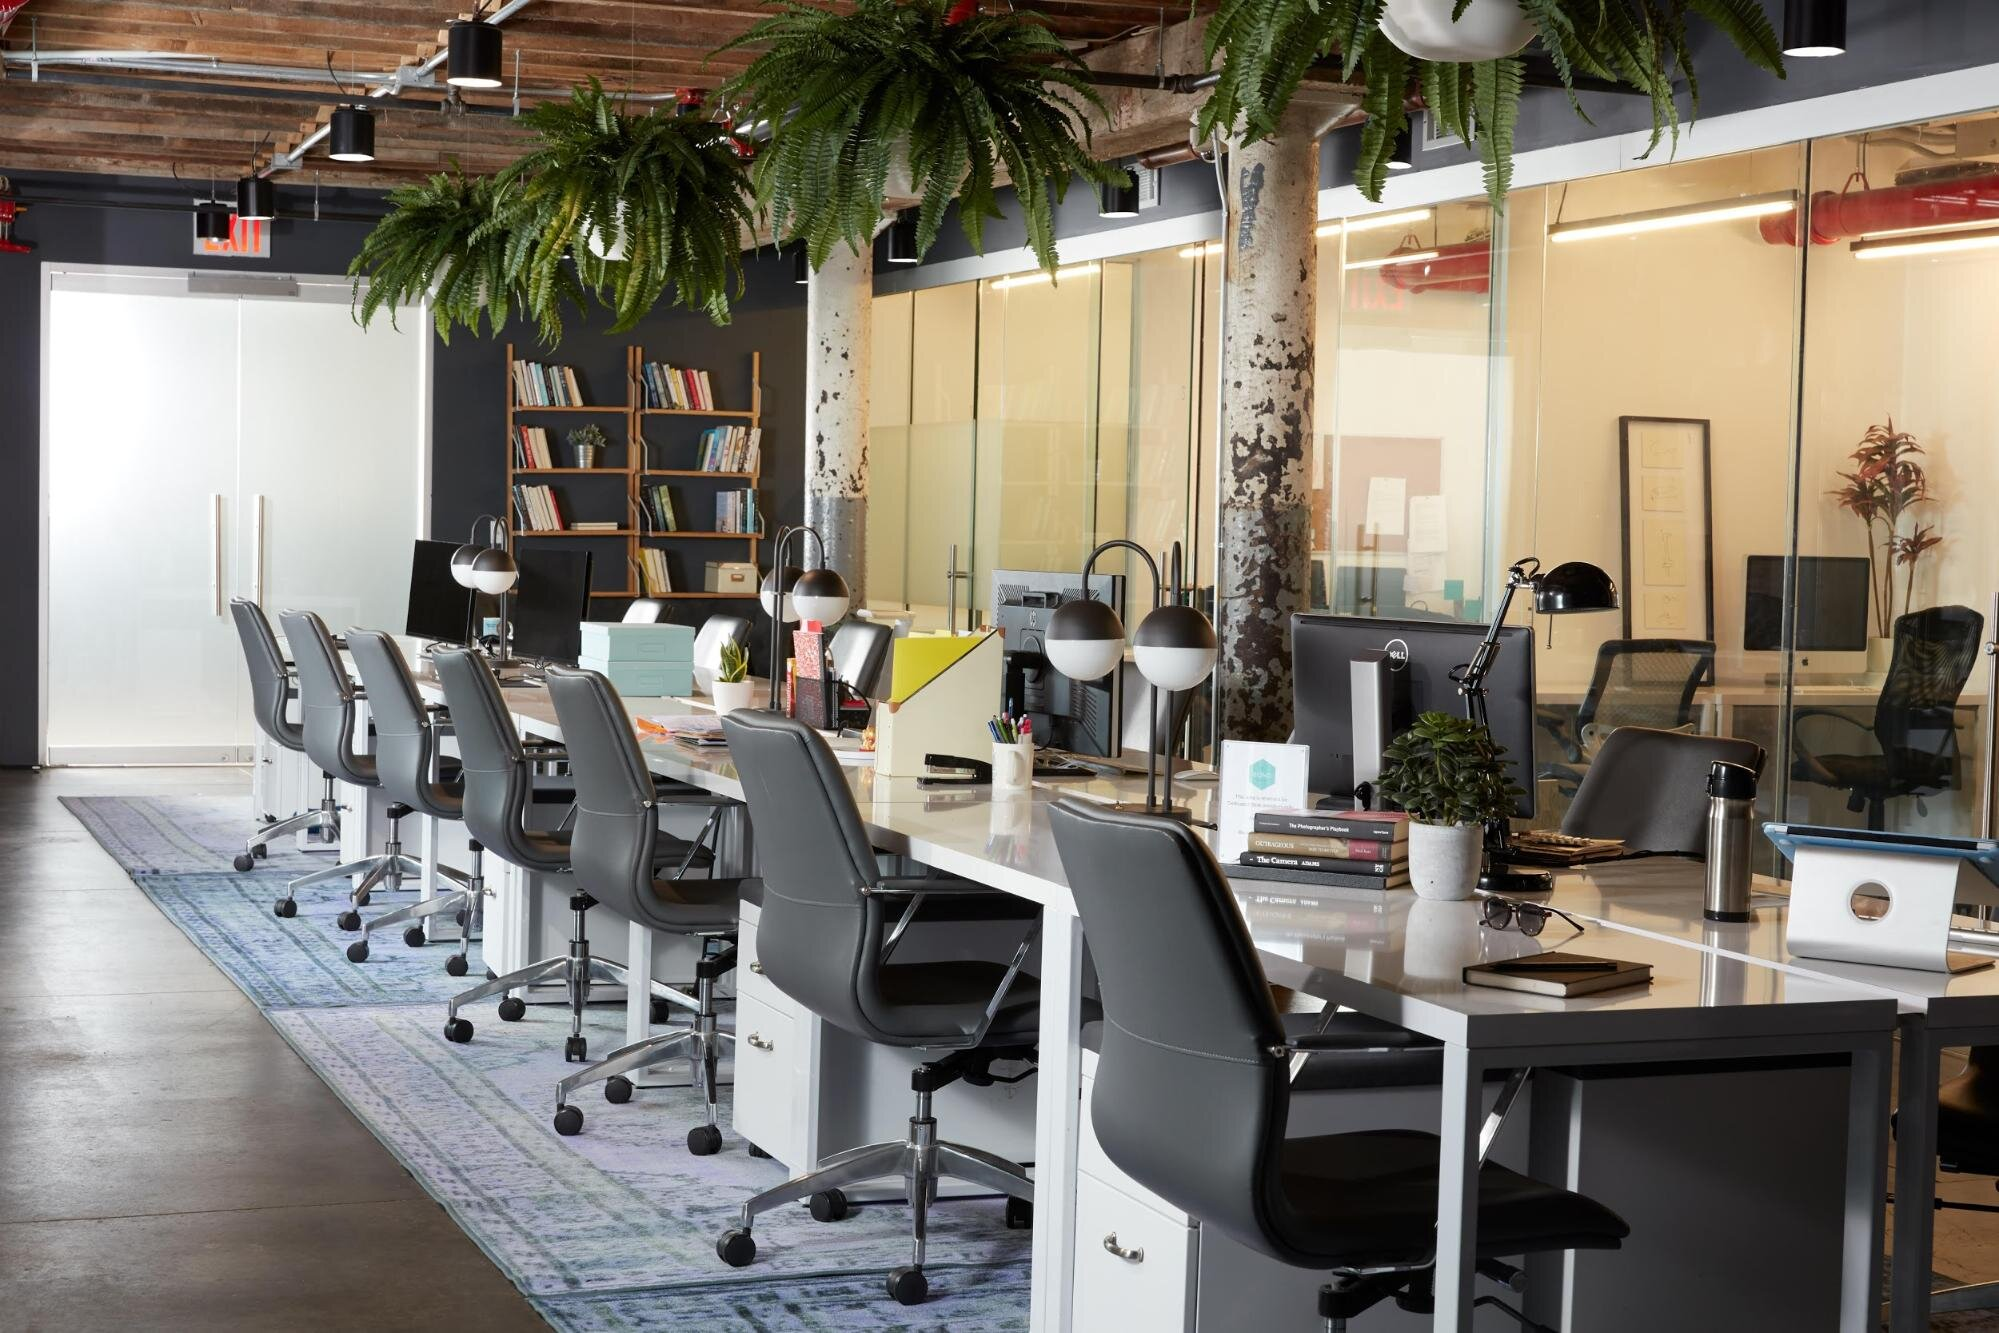 Coworking space for people who can work from anywhere